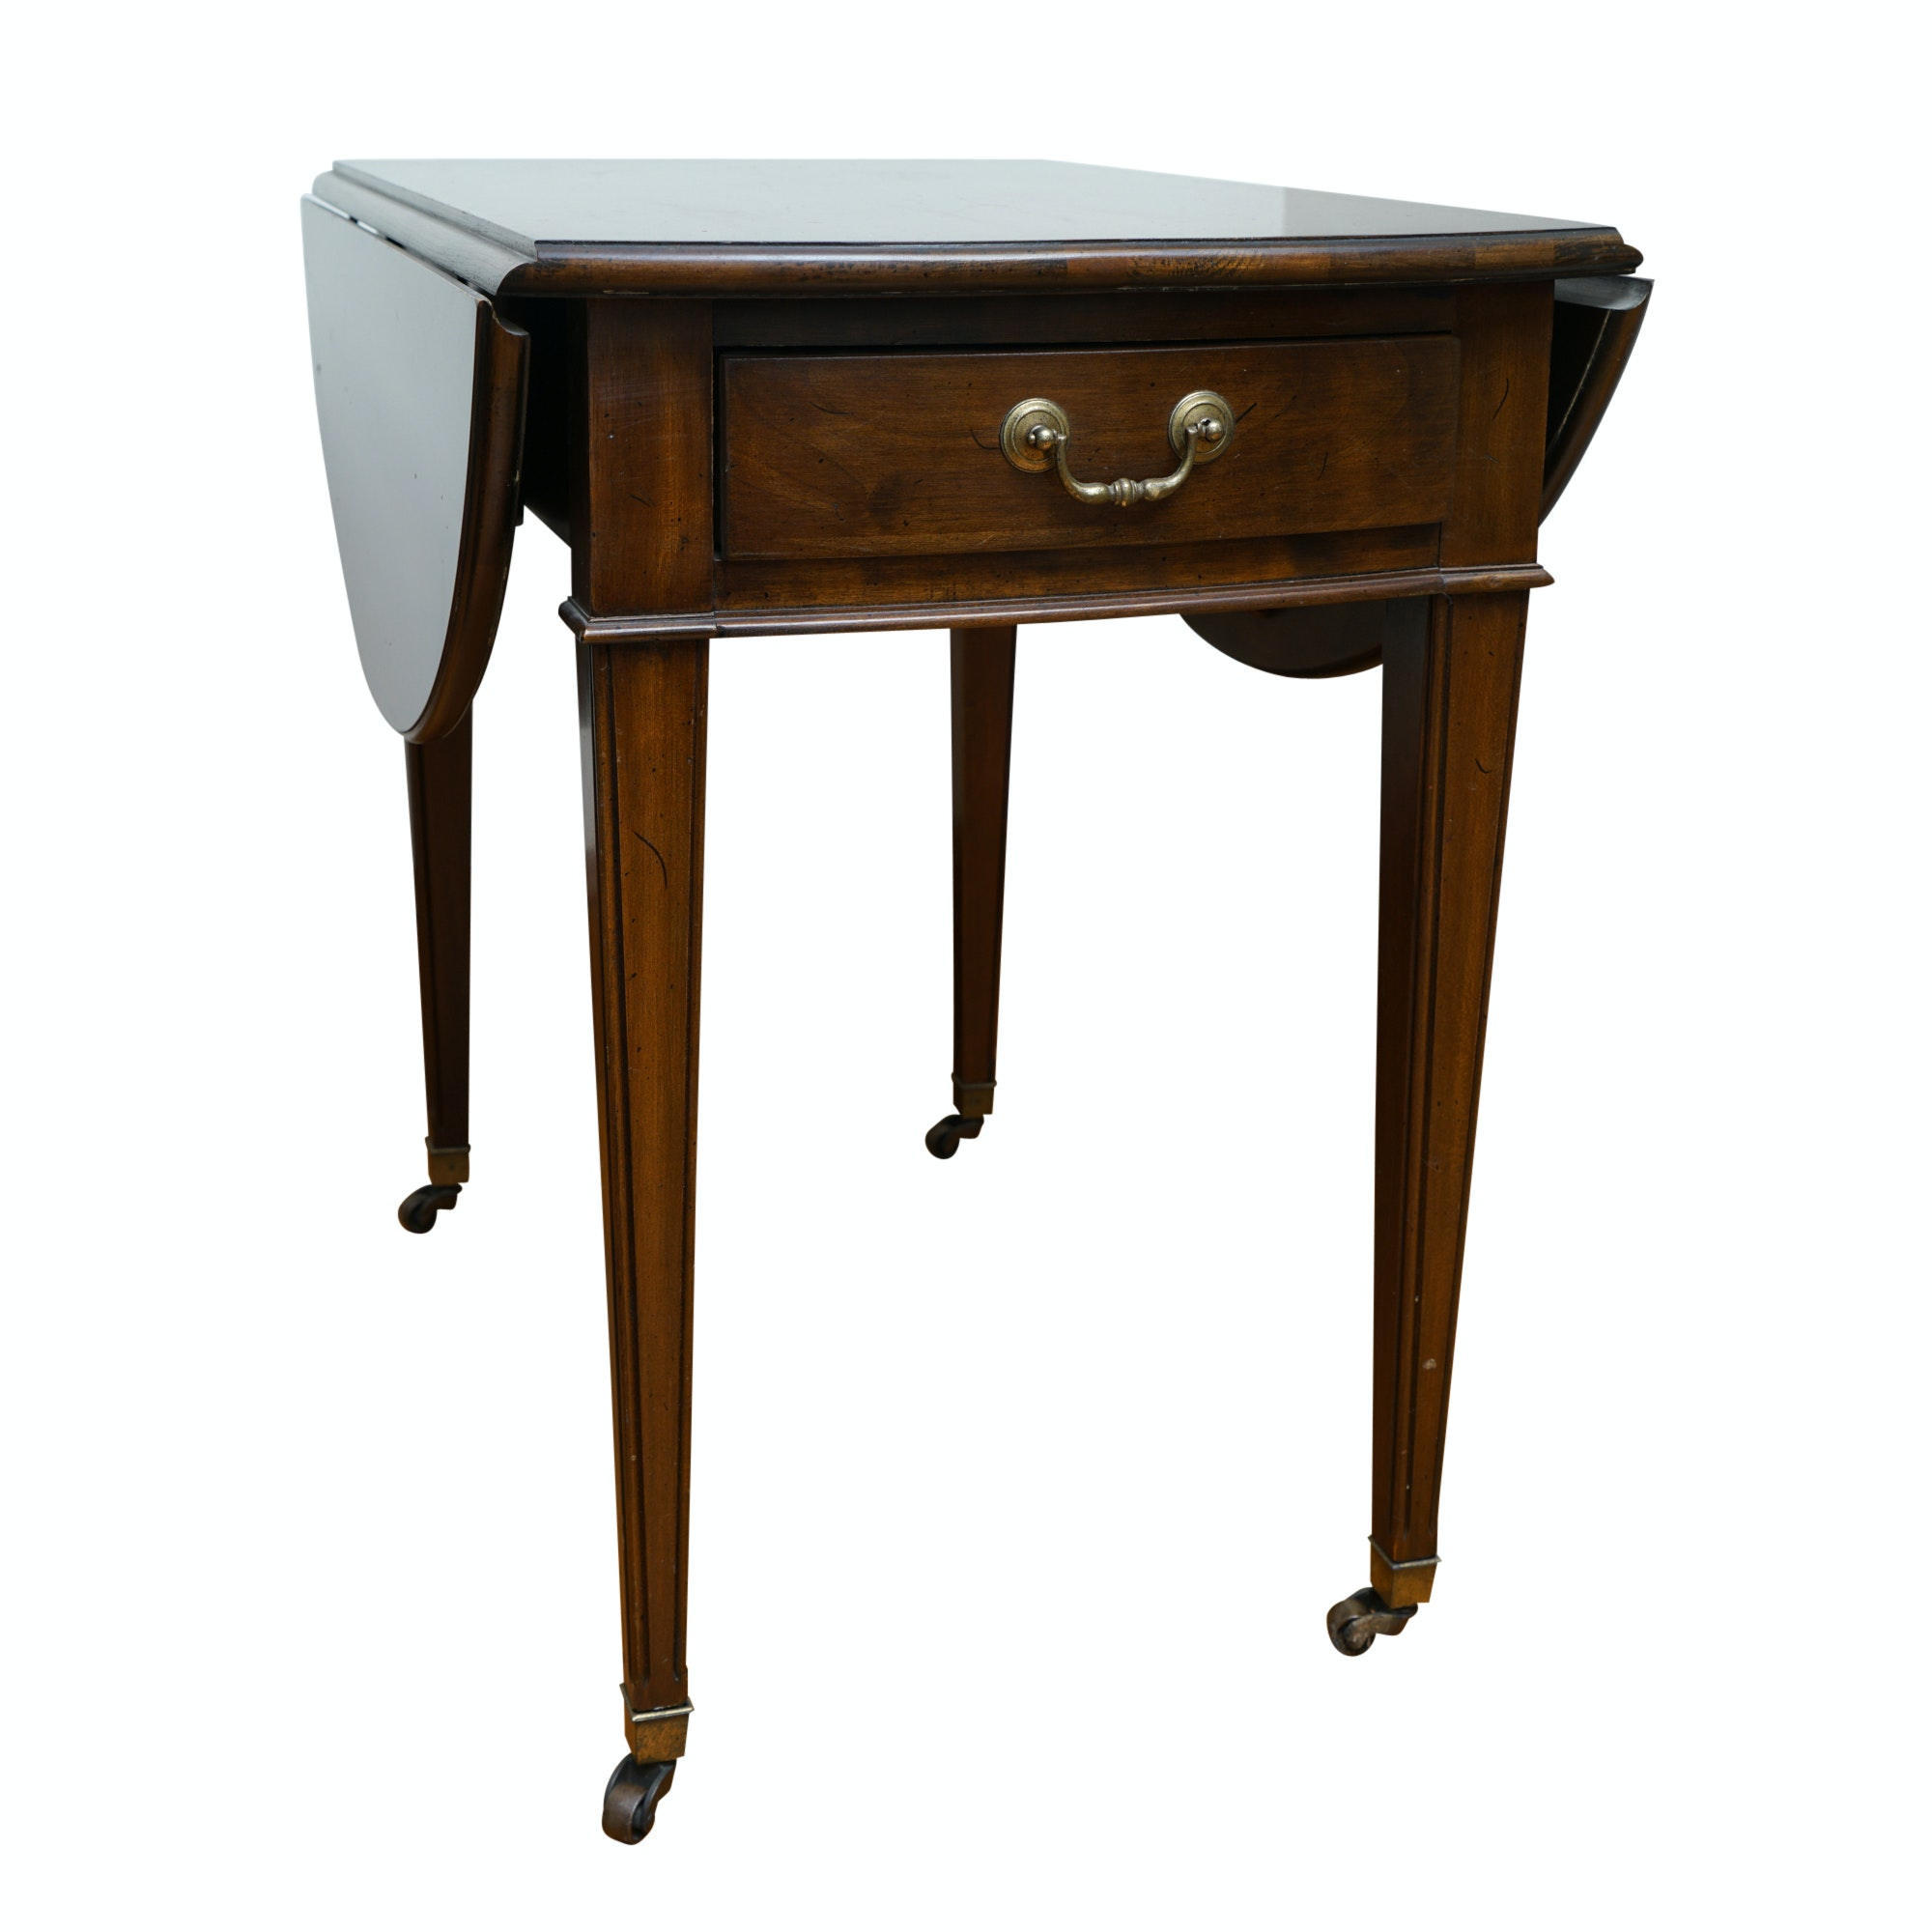 Vintage Walnut Drop-Leaf Side Table on Casters by Ethan Allen